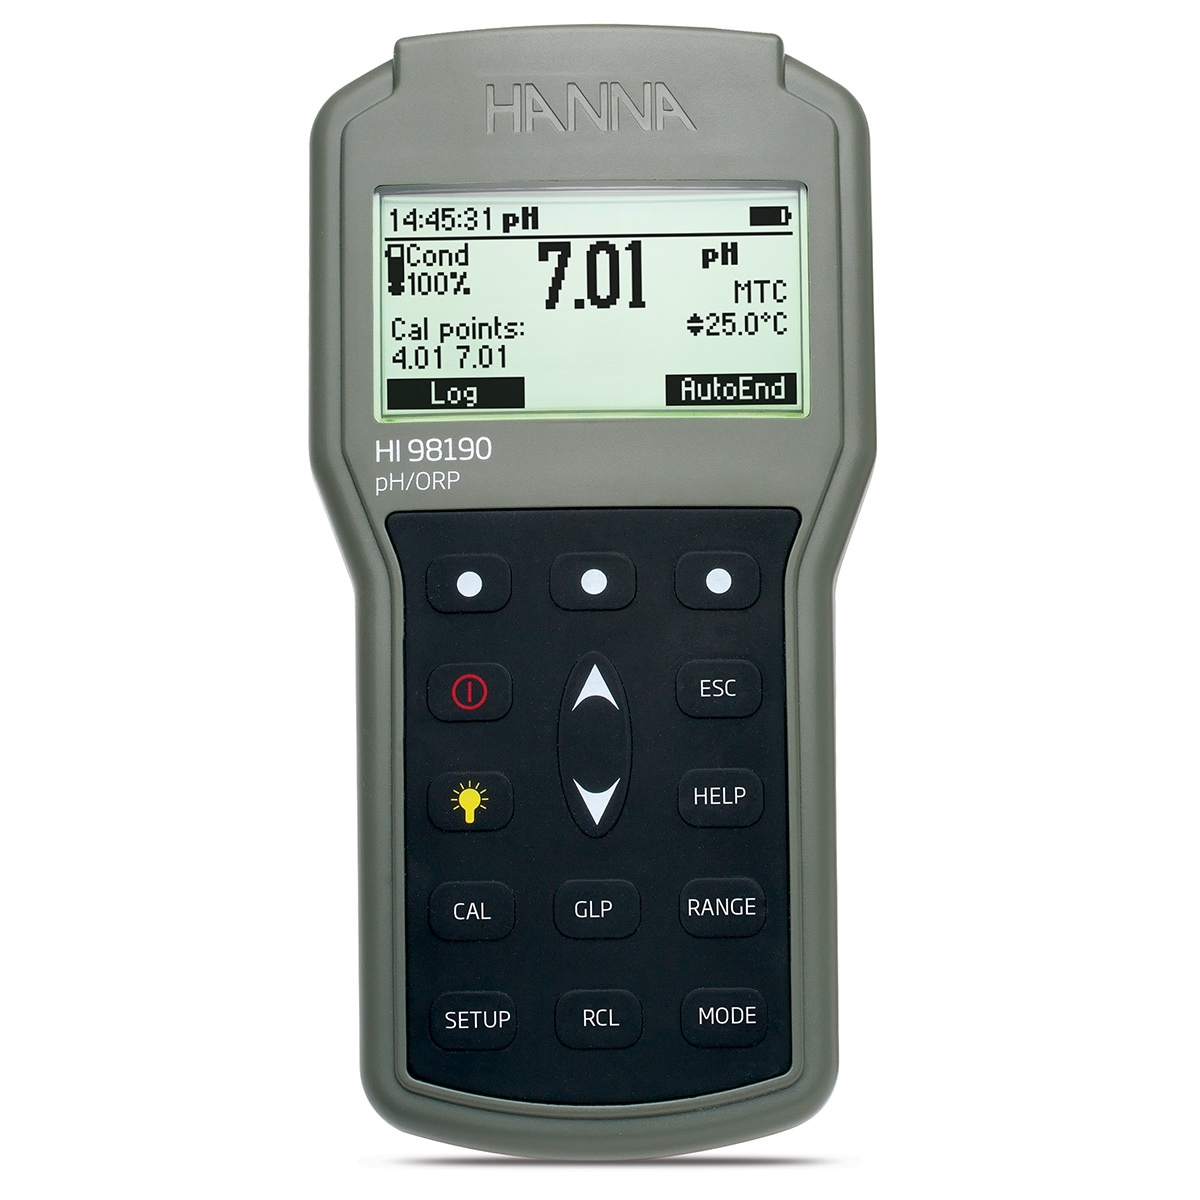 Professional Waterproof Portable pH/ORP Meter - HI98190